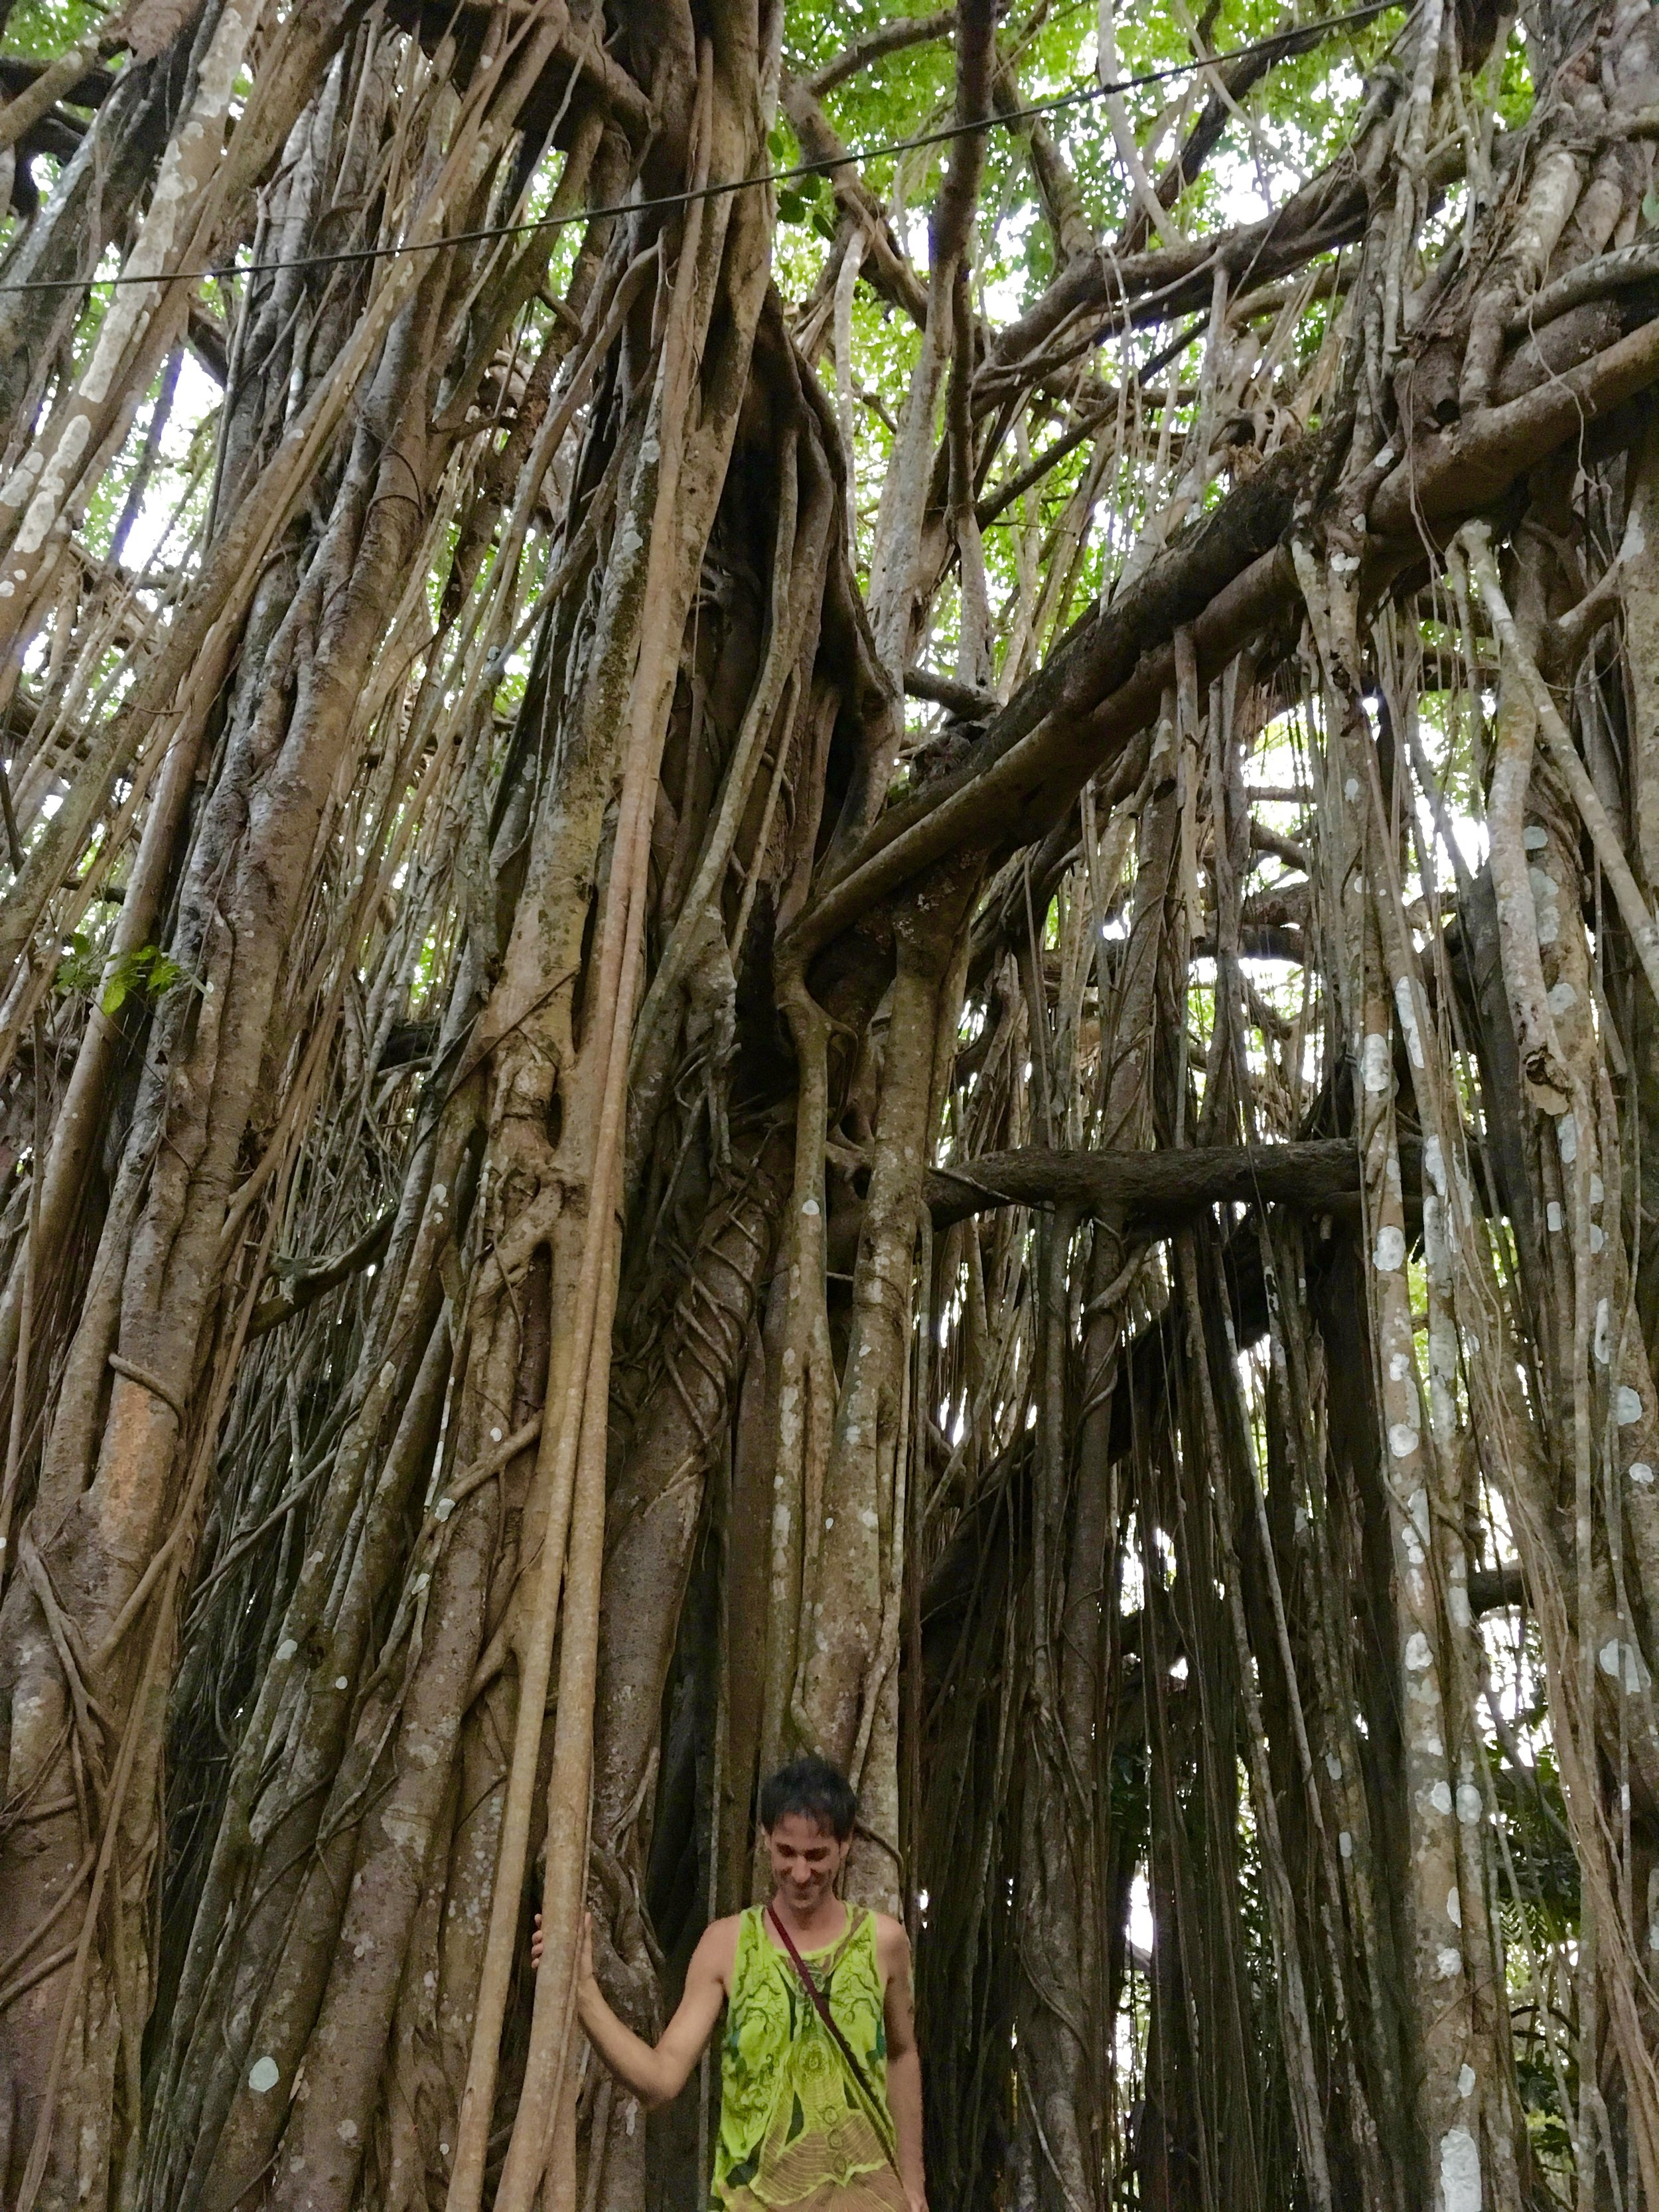 A friend standing under a massive banyan in Goa. I always look at trees as inspiration when uncertainty and impermanence stare me in the face.